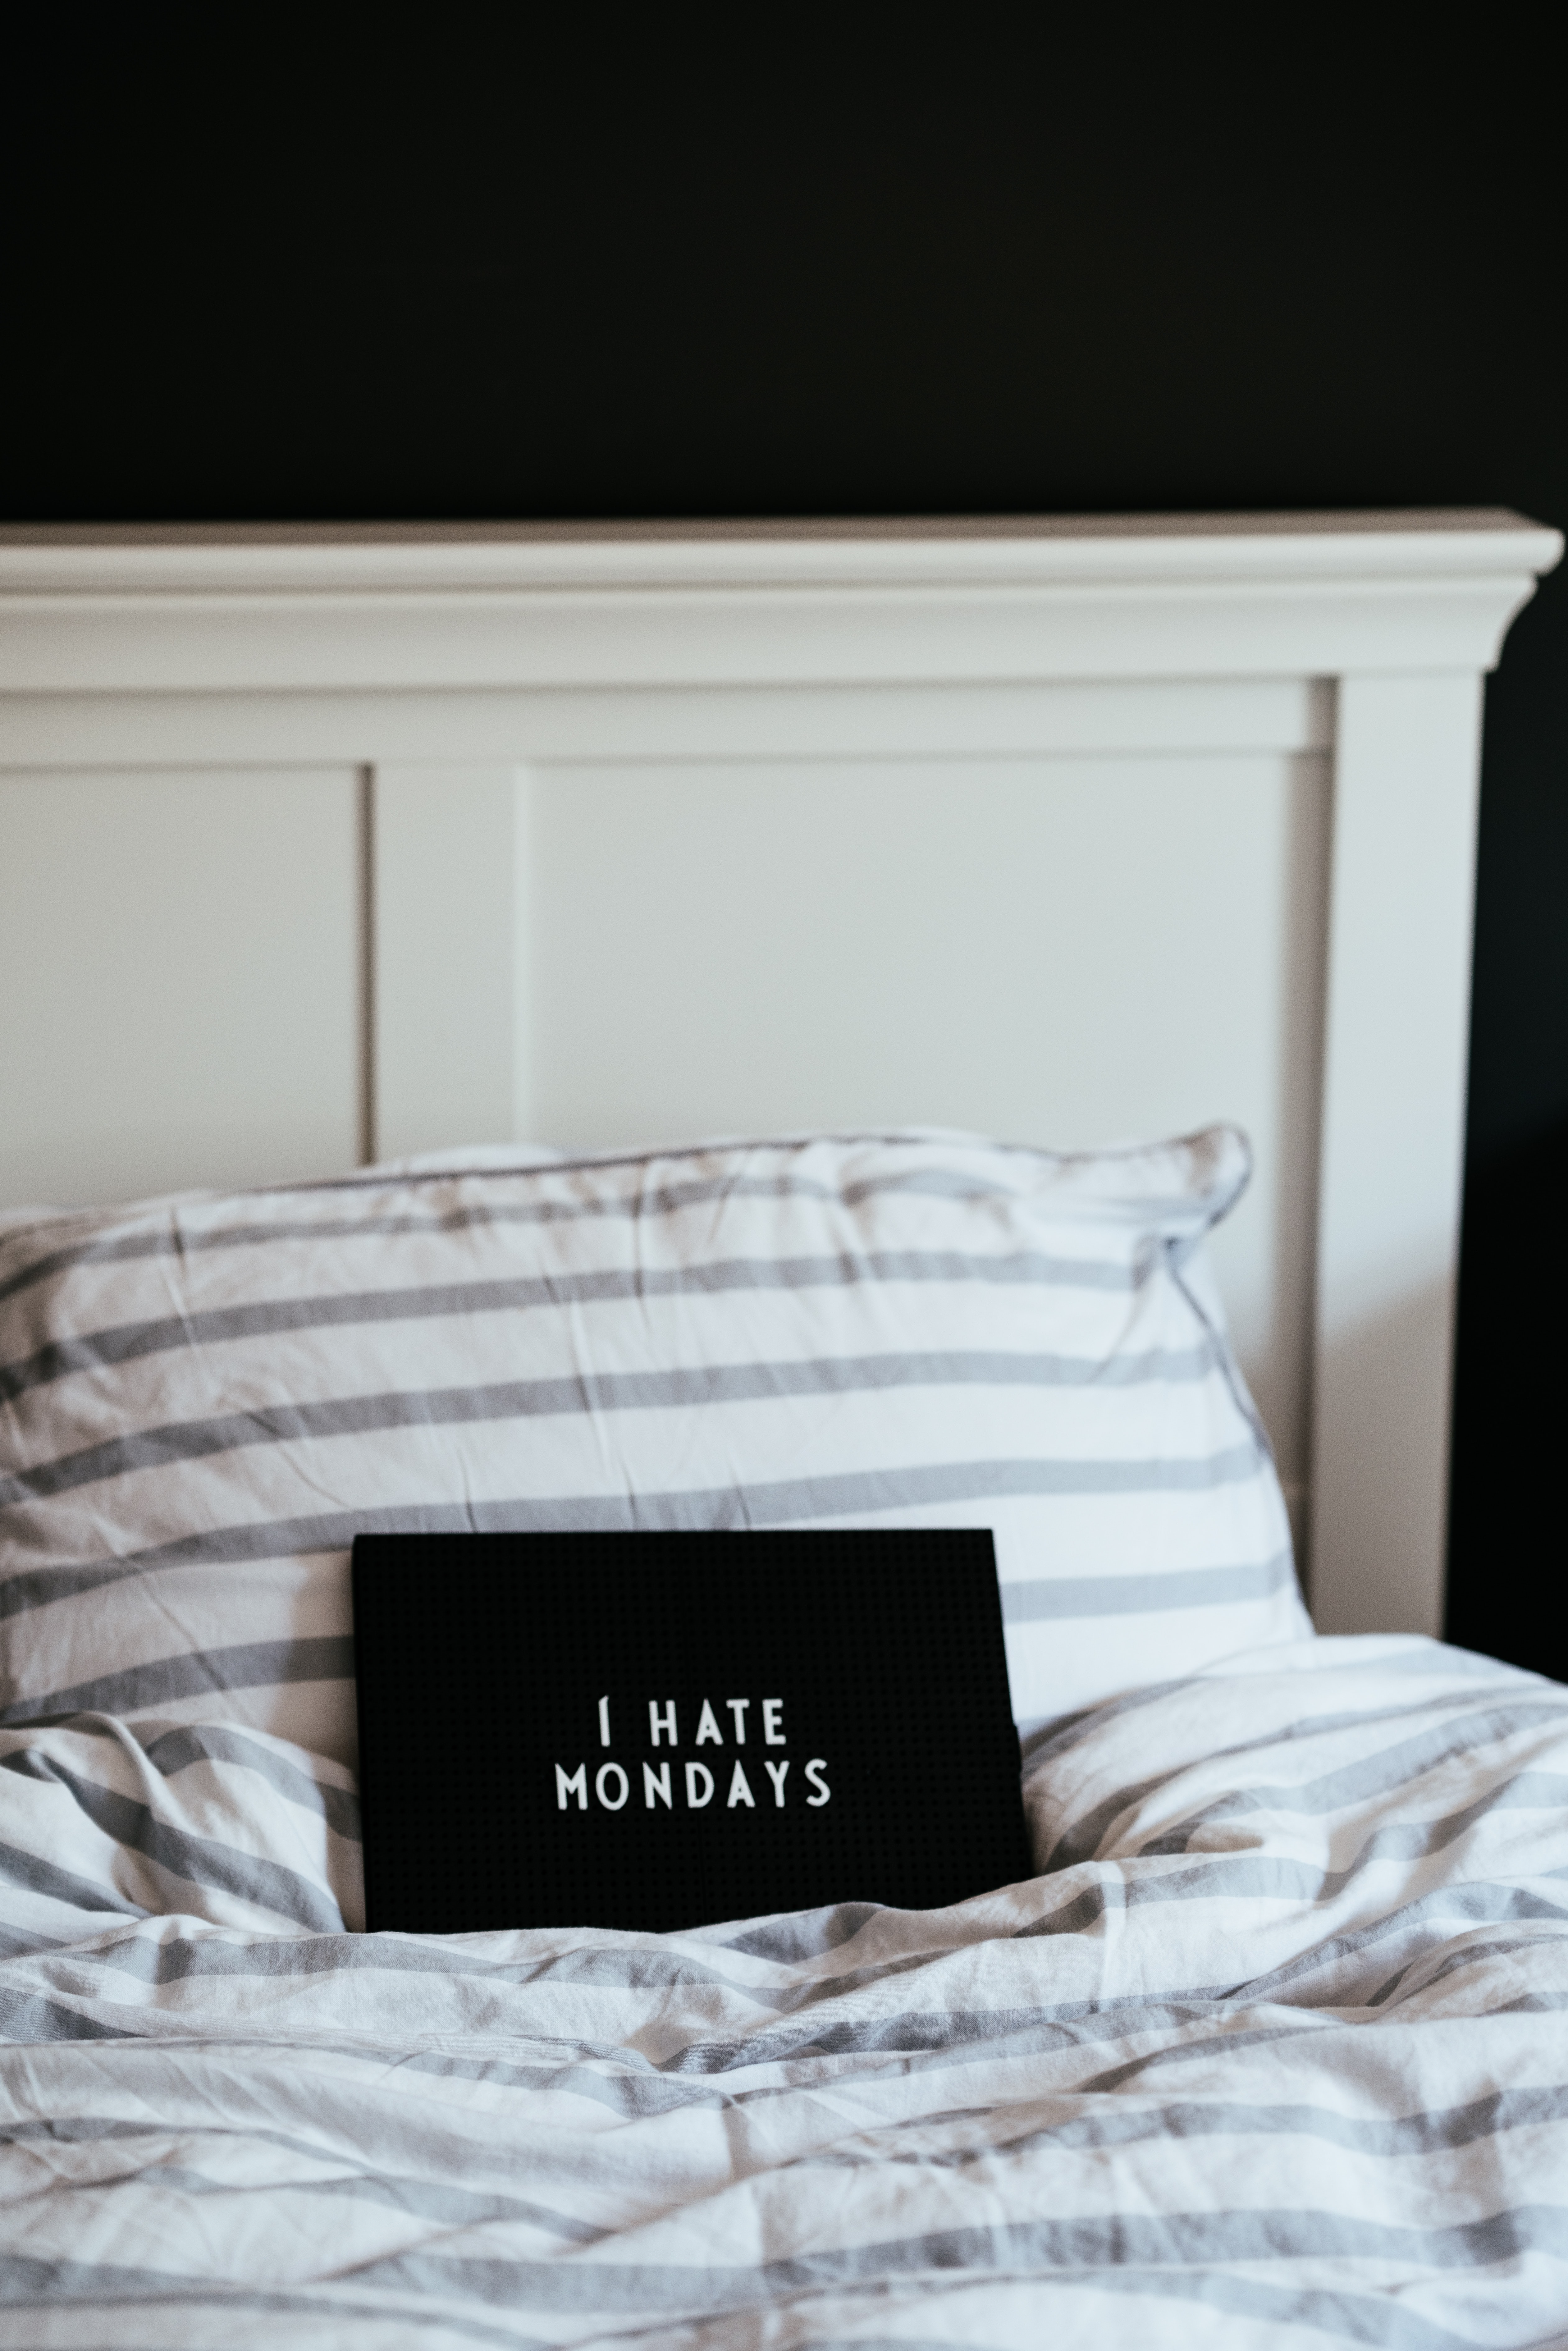 rectangular black i hate mondays-printed board on bed